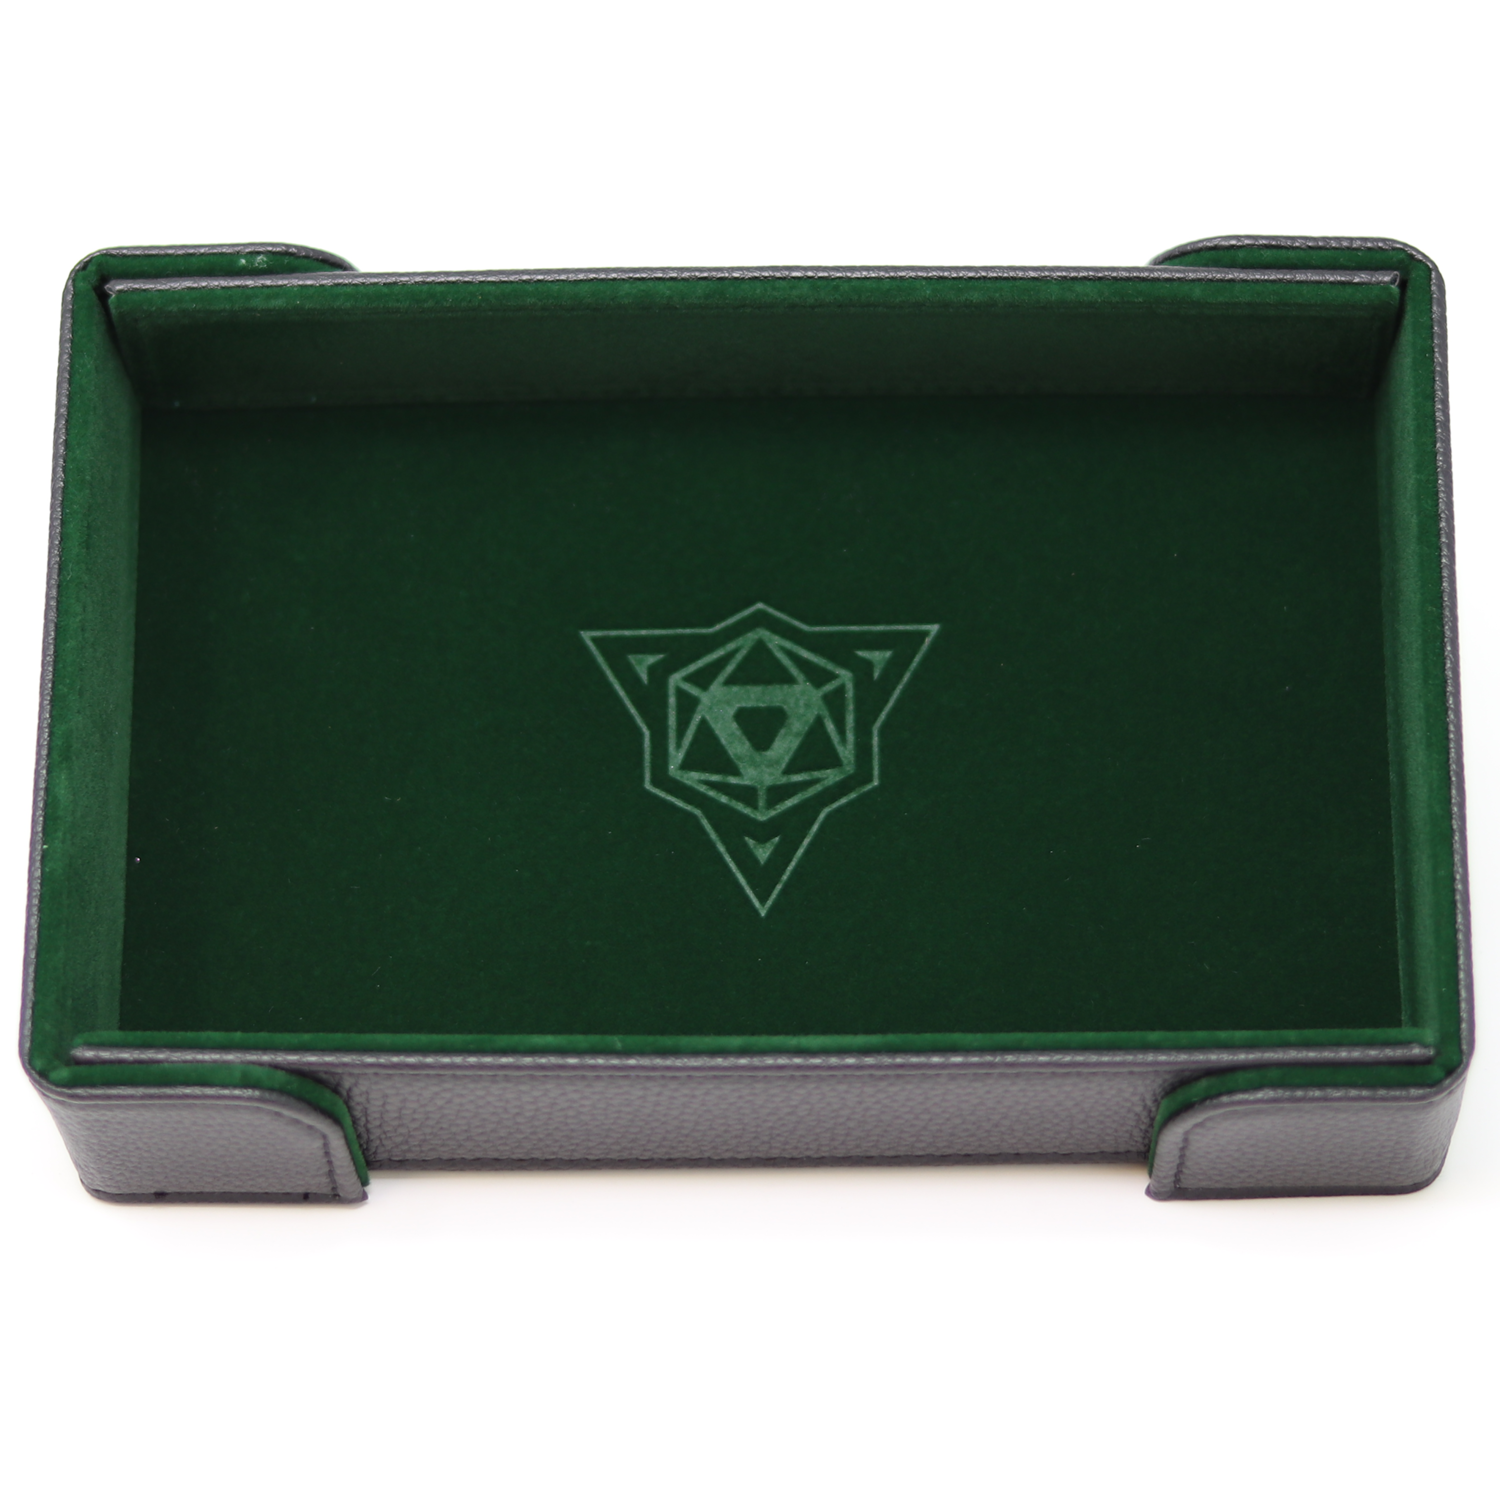 Die Hard Magnetic Dice Tray Rectangle: Green Velvet